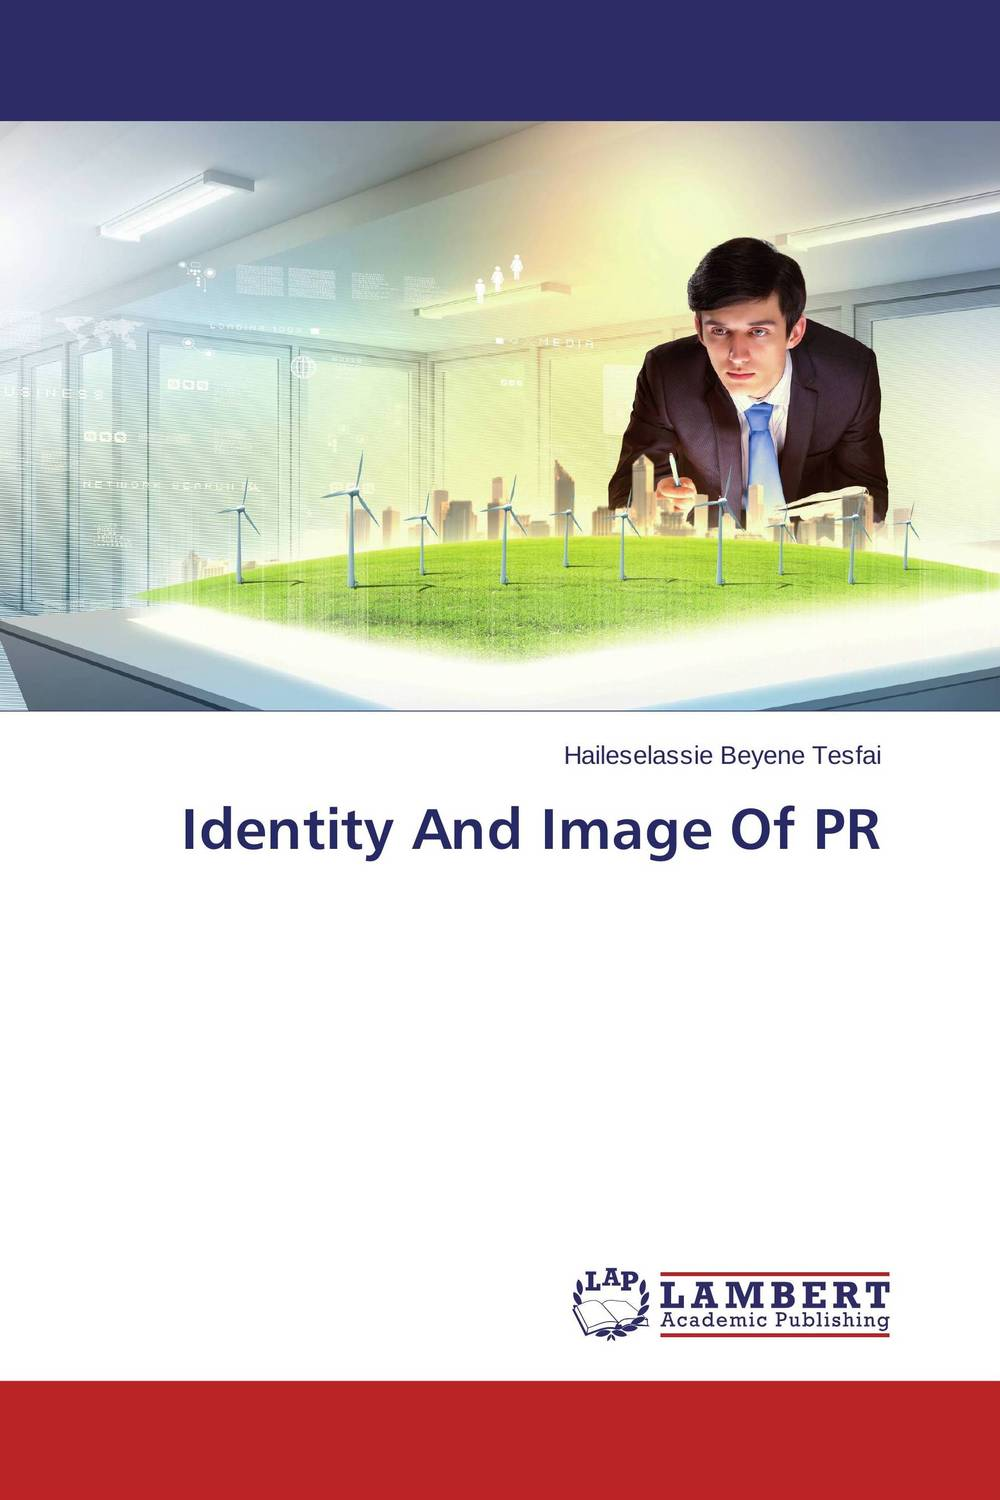 Identity And Image Of PR public relations science management